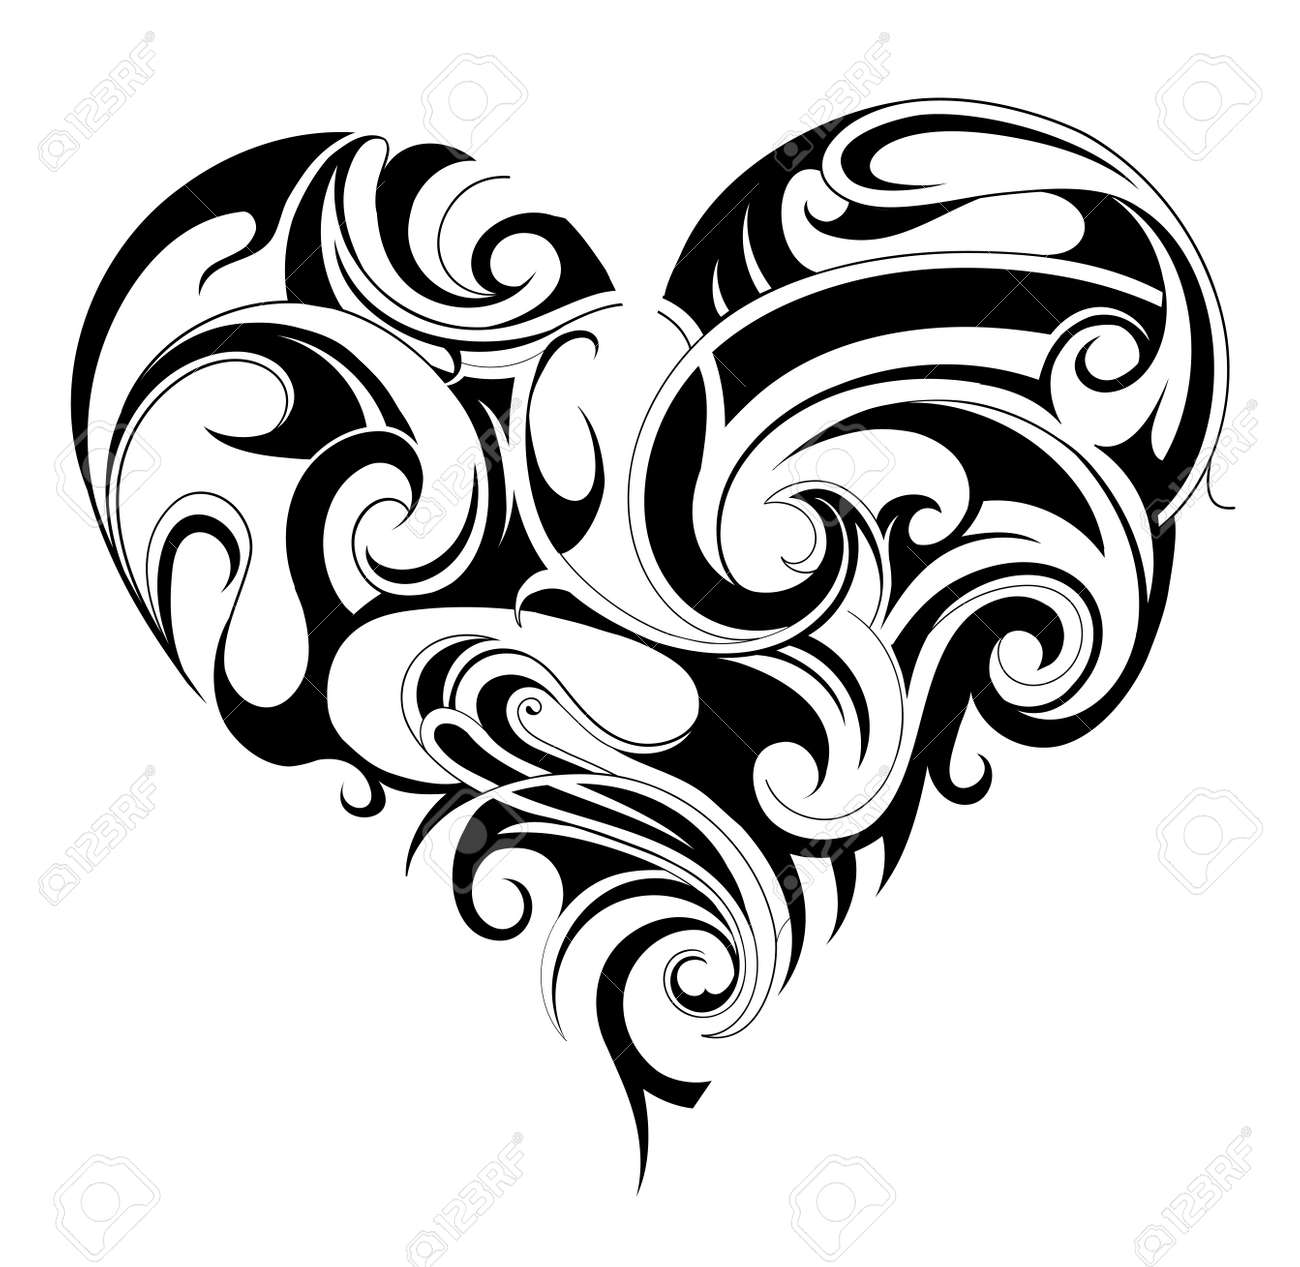 Heart Shape Tattoo Ornament Isolated On White Royalty Free Cliparts Vectors And Stock Illustration Image 36274774